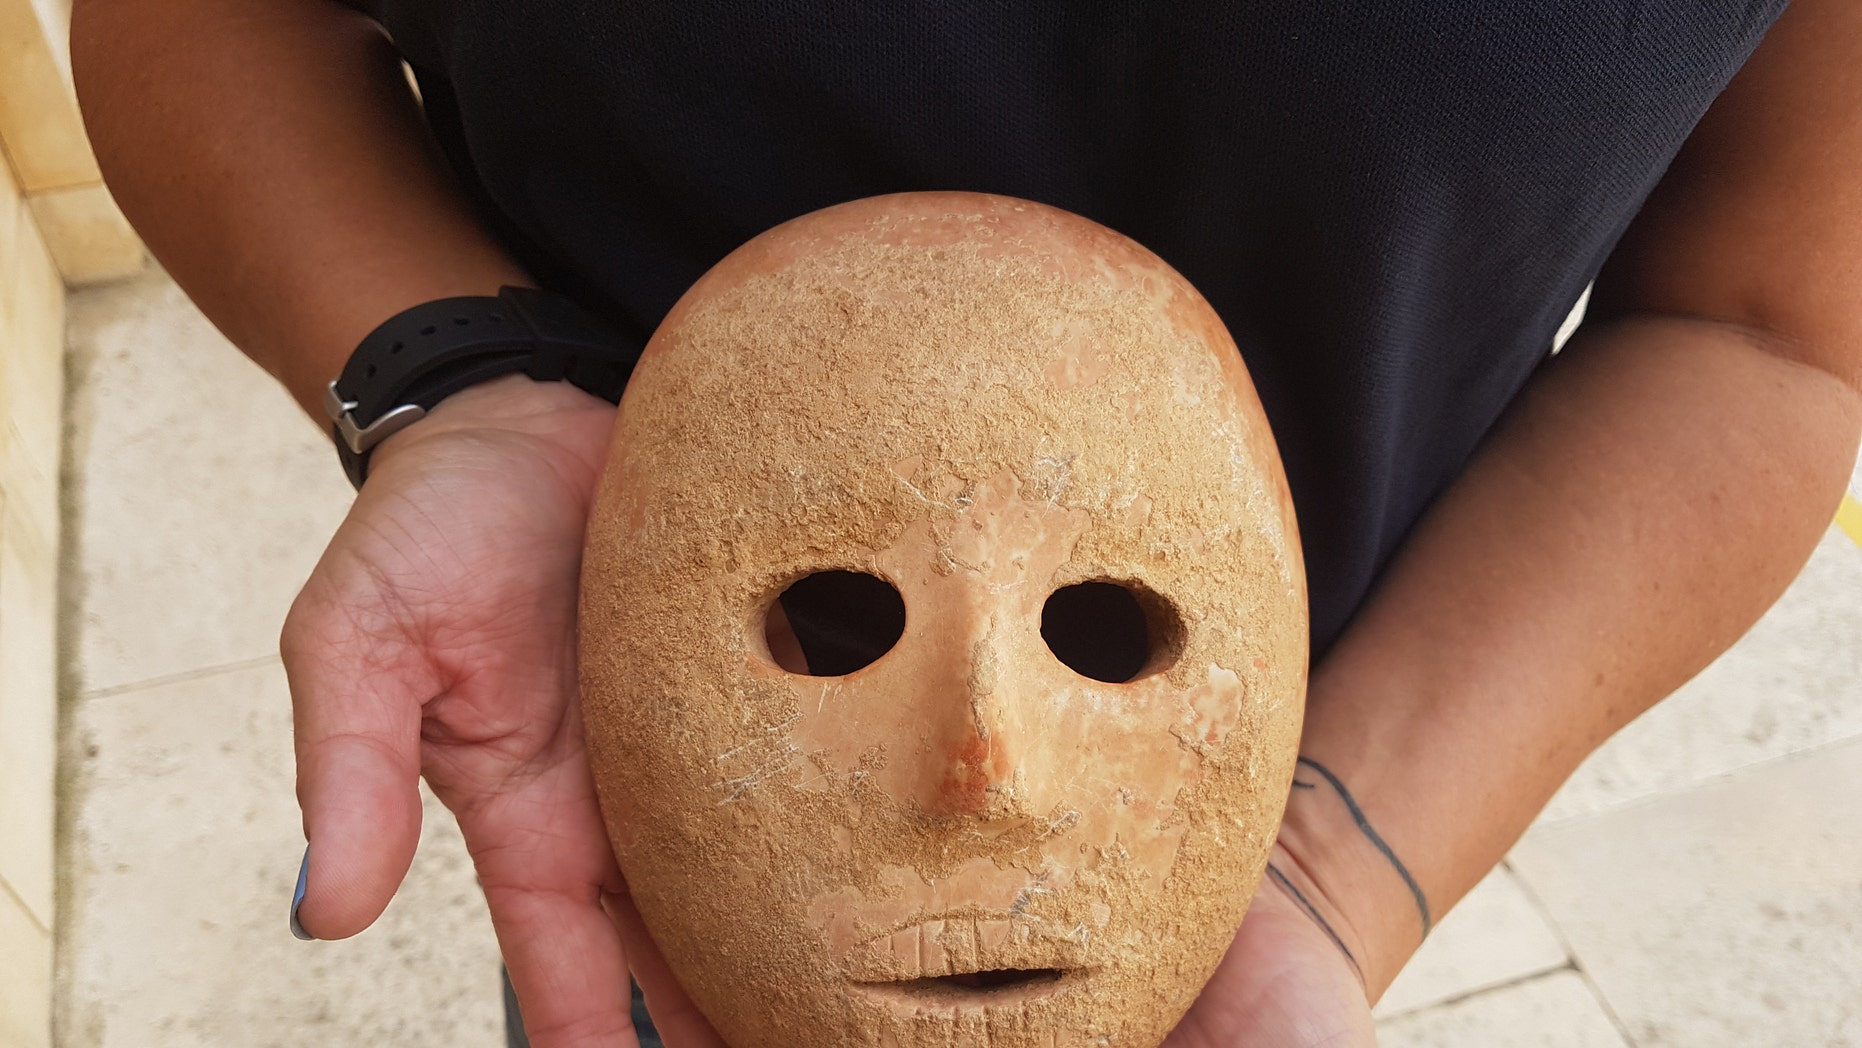 The ancient mask was discovered on the West Bank. (Antiquities Theft Prevention Unit, Israel Antiquities Authority)<br><br>